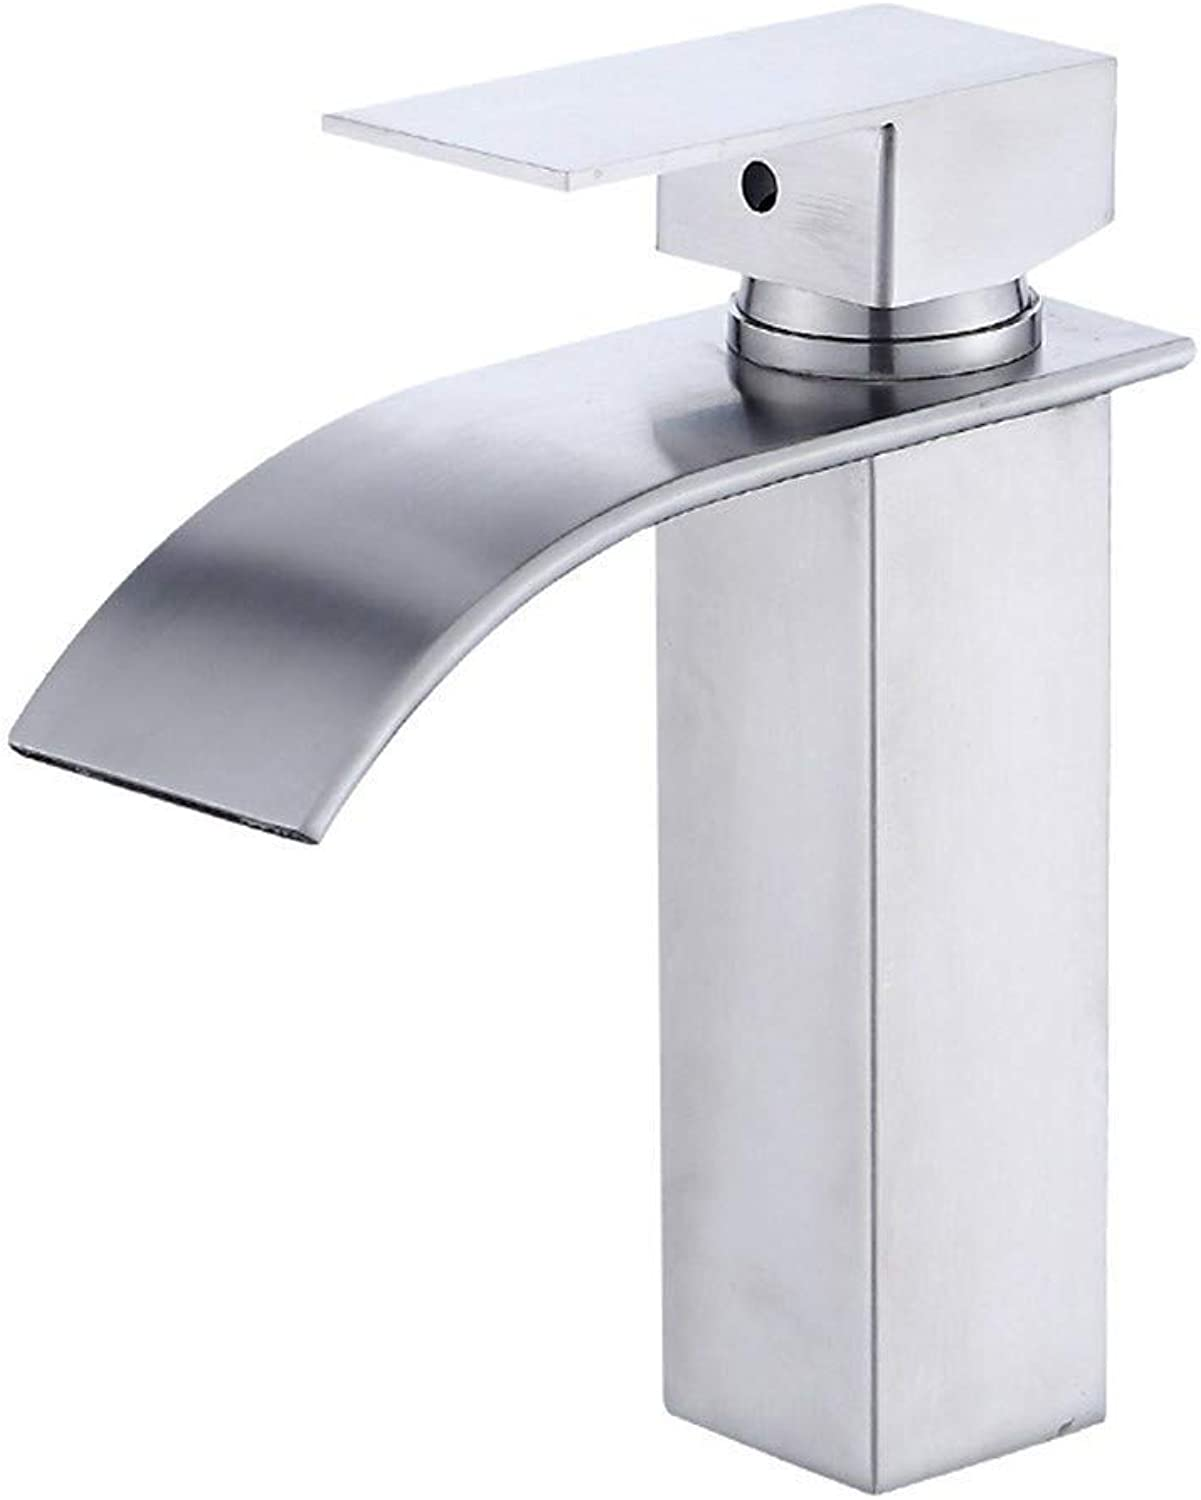 Oudan 304 Stainless Steel Basin Waterfall Faucet Hot and Cold Water Mixing Faucet Basin Wash Hand BasinS65-UE6589321705 (color   -, Size   -)